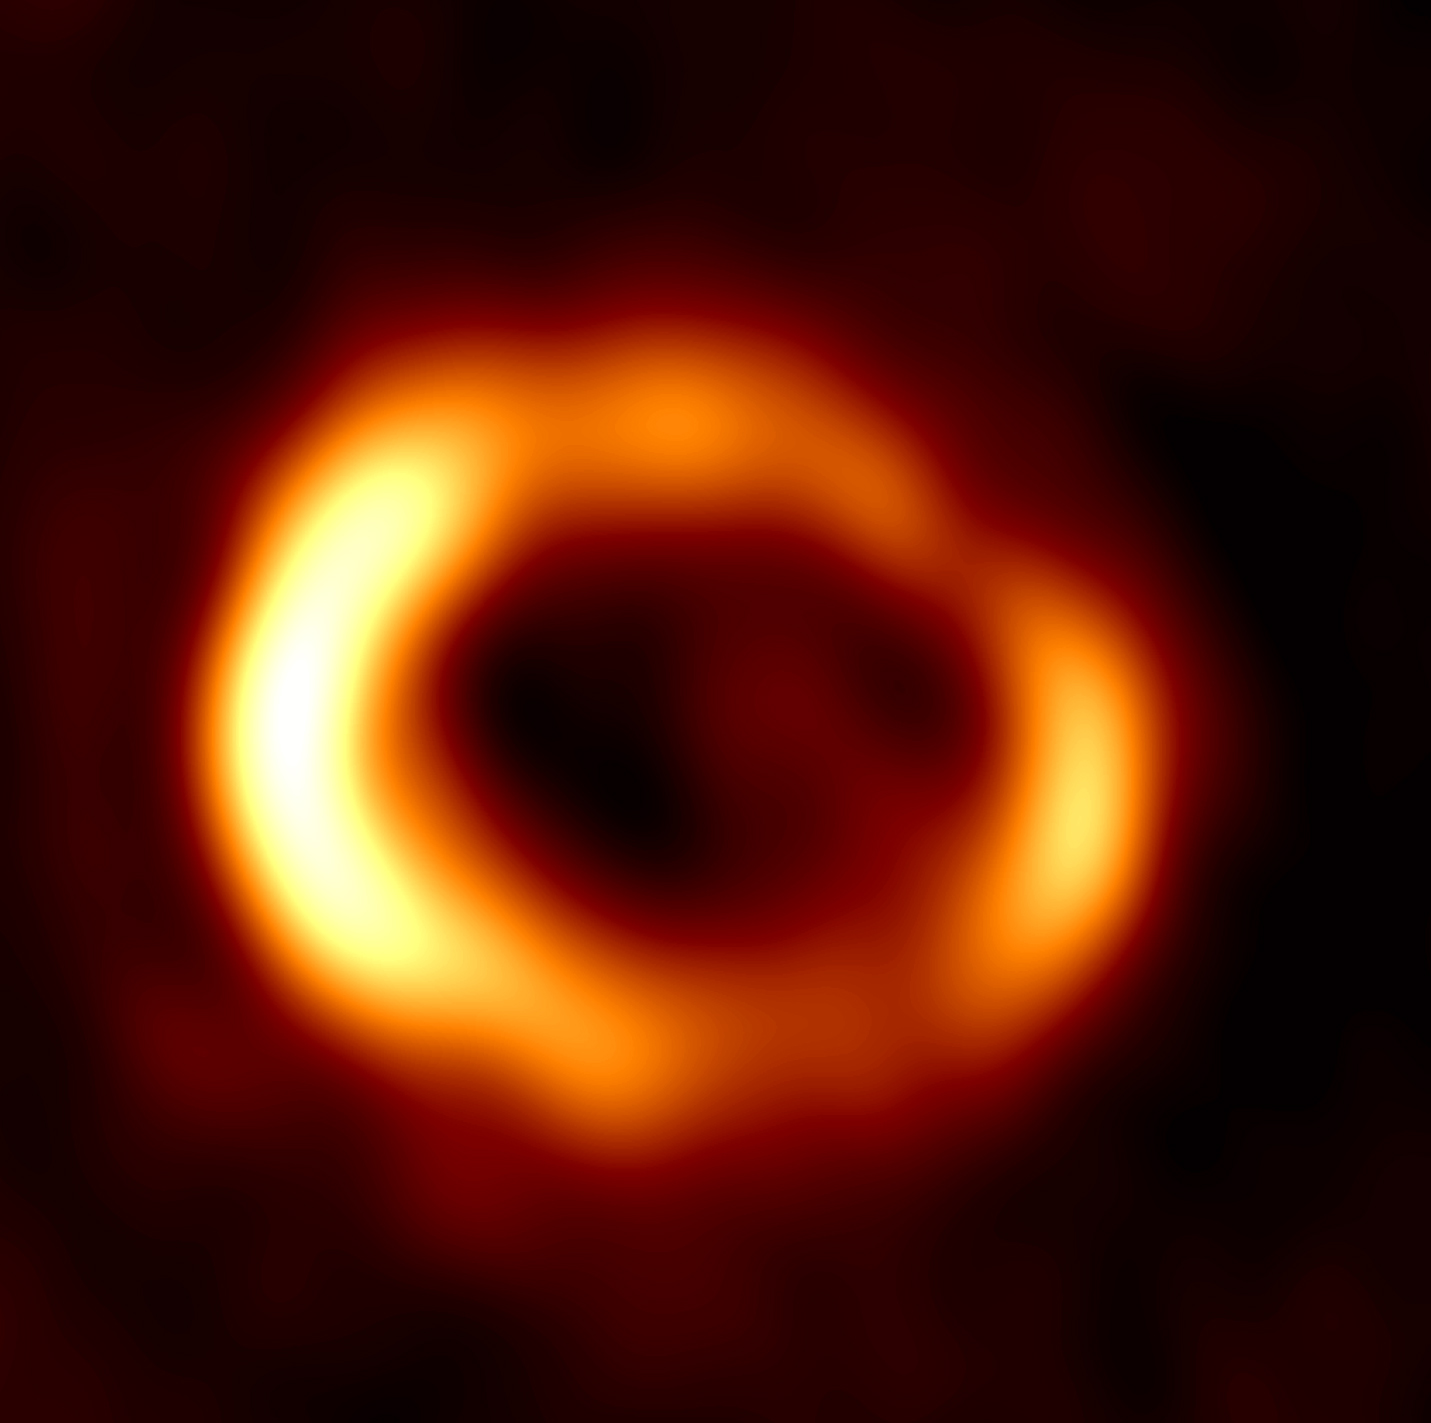 Radio image at 7 mm. Credit: ICRAR Radio image of the remnant of SN 1987A produced from observations performed with the Australia Telescope Compact Array (ATCA).